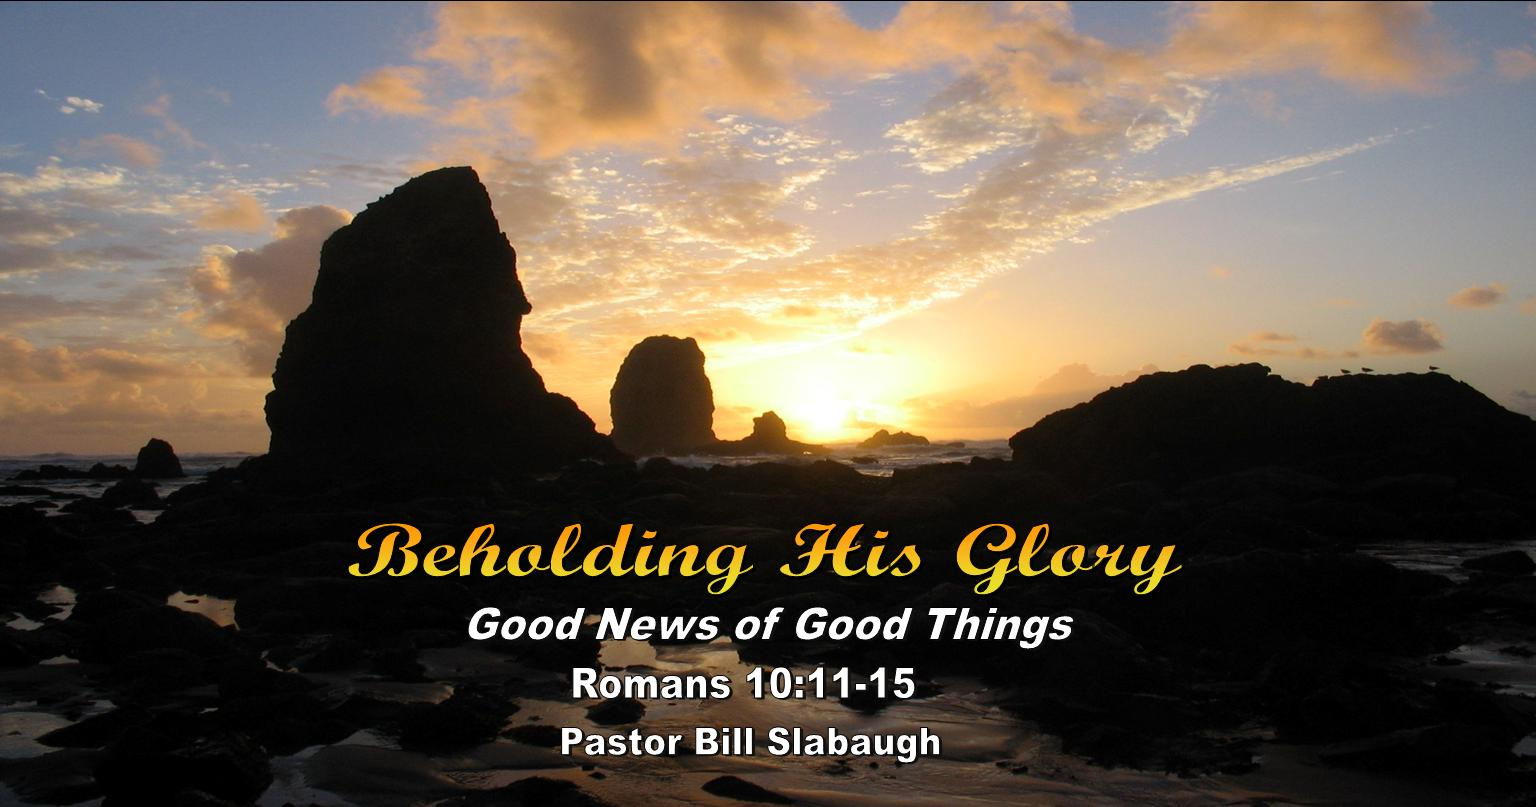 Sermon Outline: Romans 10:11-15 ~ Good News of Good Things